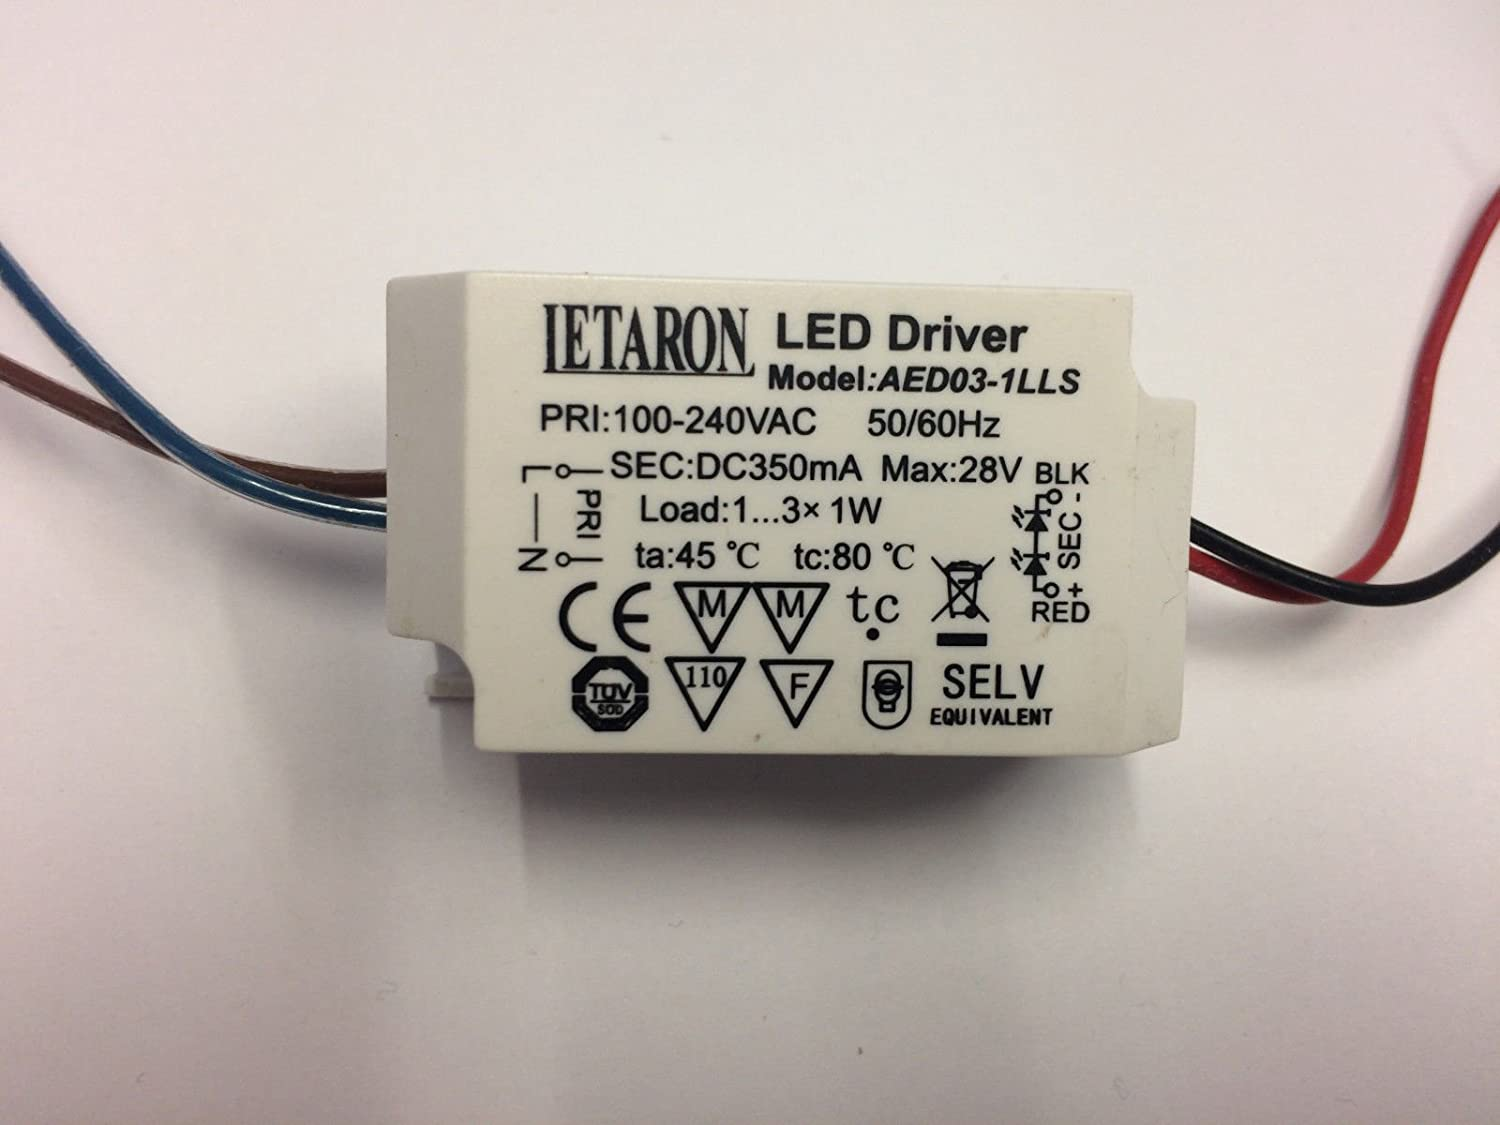 Led Driver Letaron Aed03 1lls 350ma Max 1 3 X W Switch 1w Circuit Business Industry Science